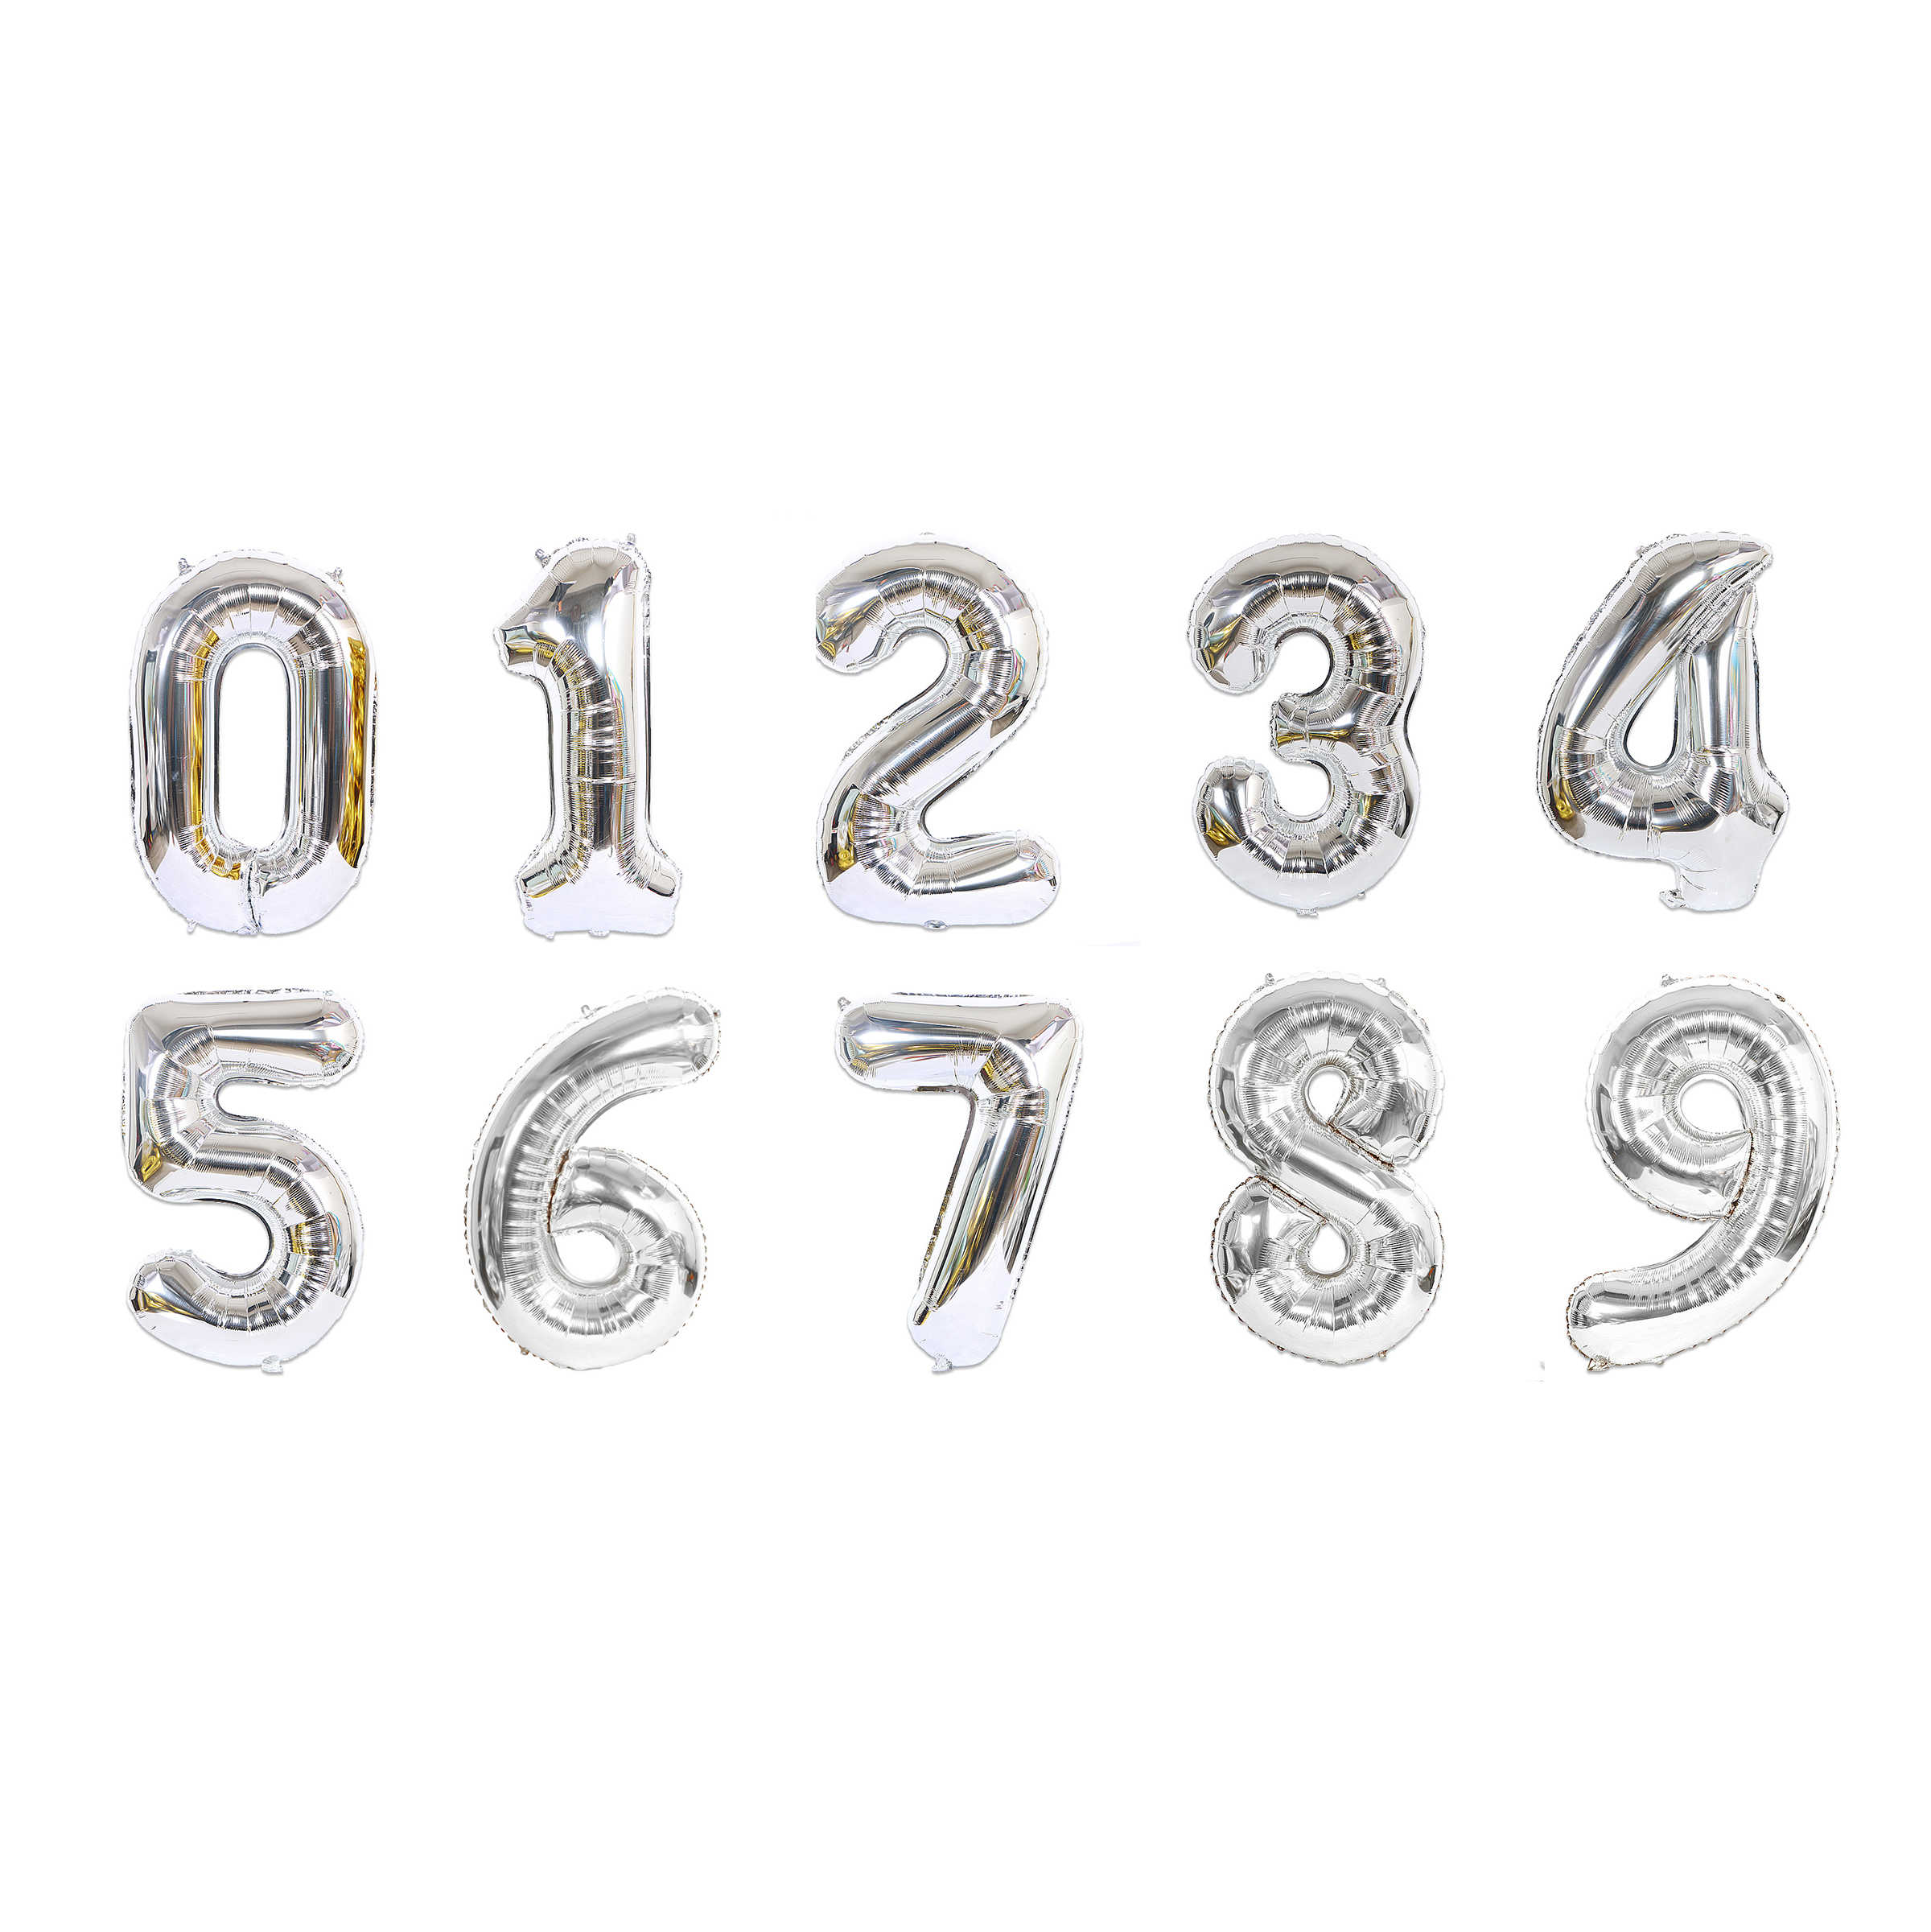 1pc 40 inch Rose Gold Silver Aluminium Foil Number Balloons 0-9 Birthday Wedding Engagement Party Decor Globos Kids Ball Supplie